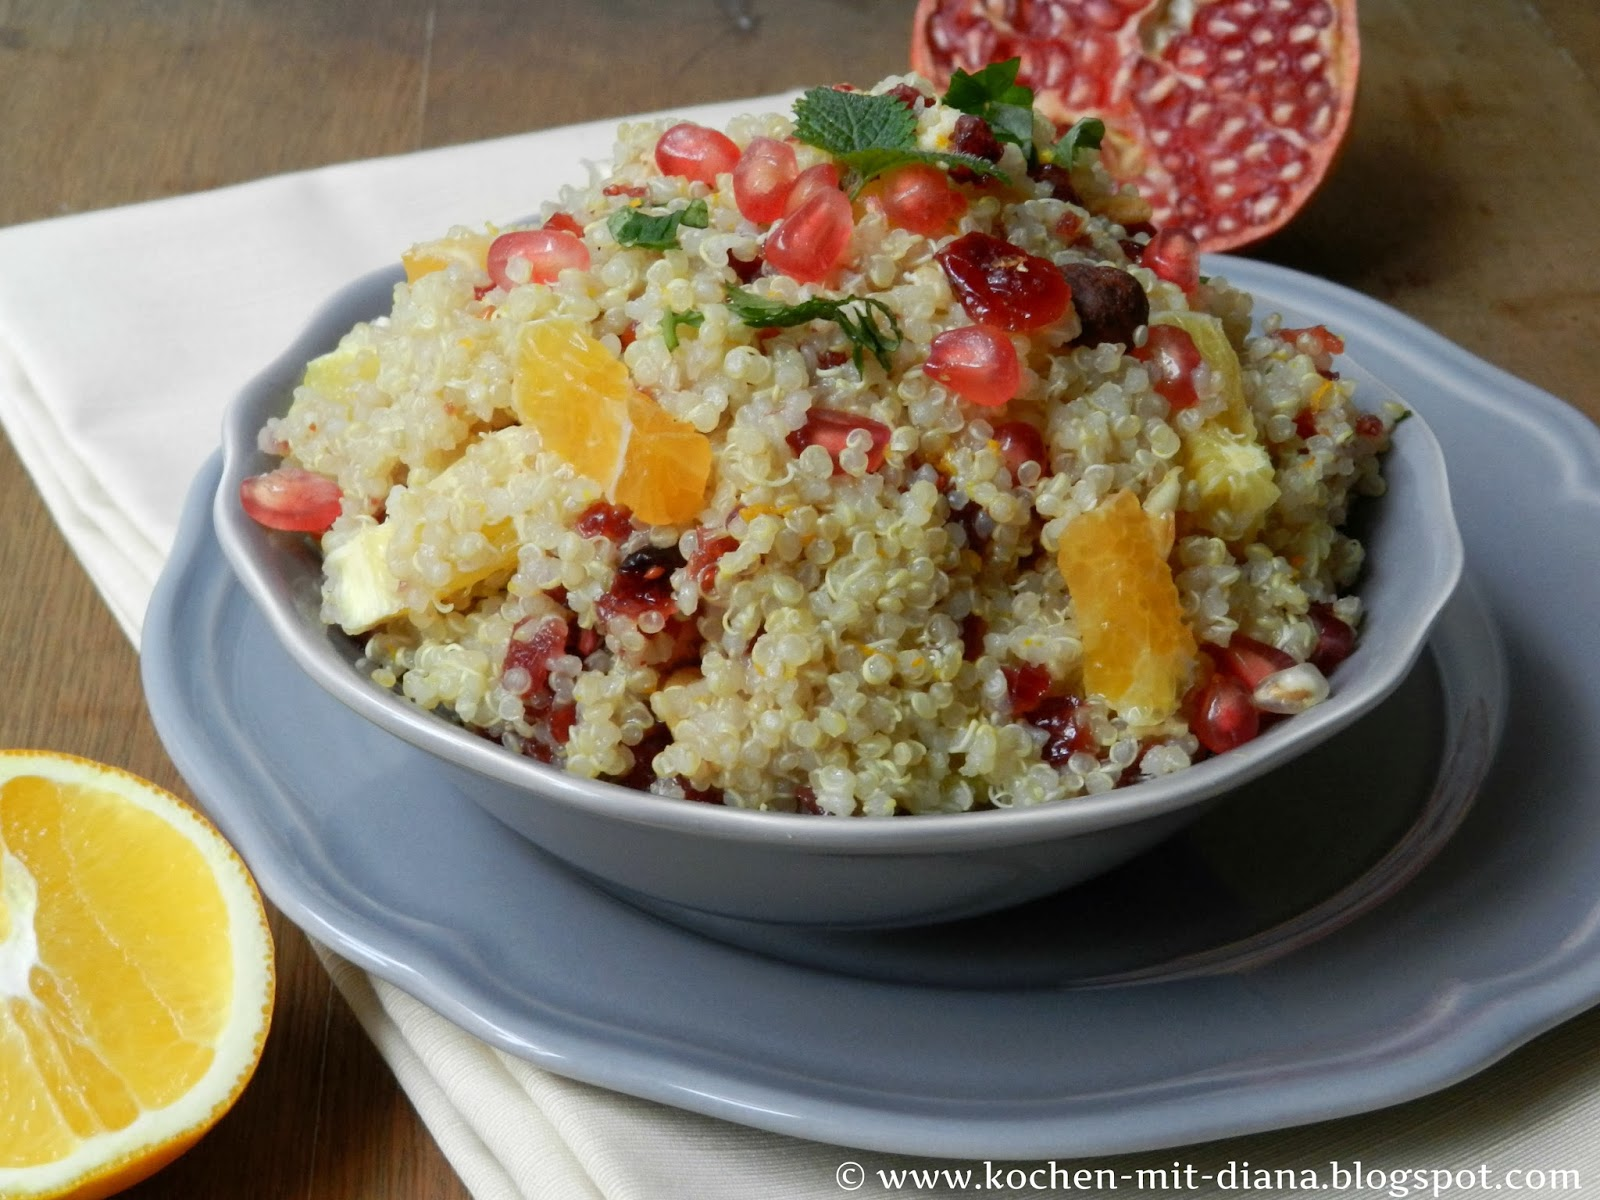 quinoa salat mit preiselbeeren und orangen kochen mit diana. Black Bedroom Furniture Sets. Home Design Ideas